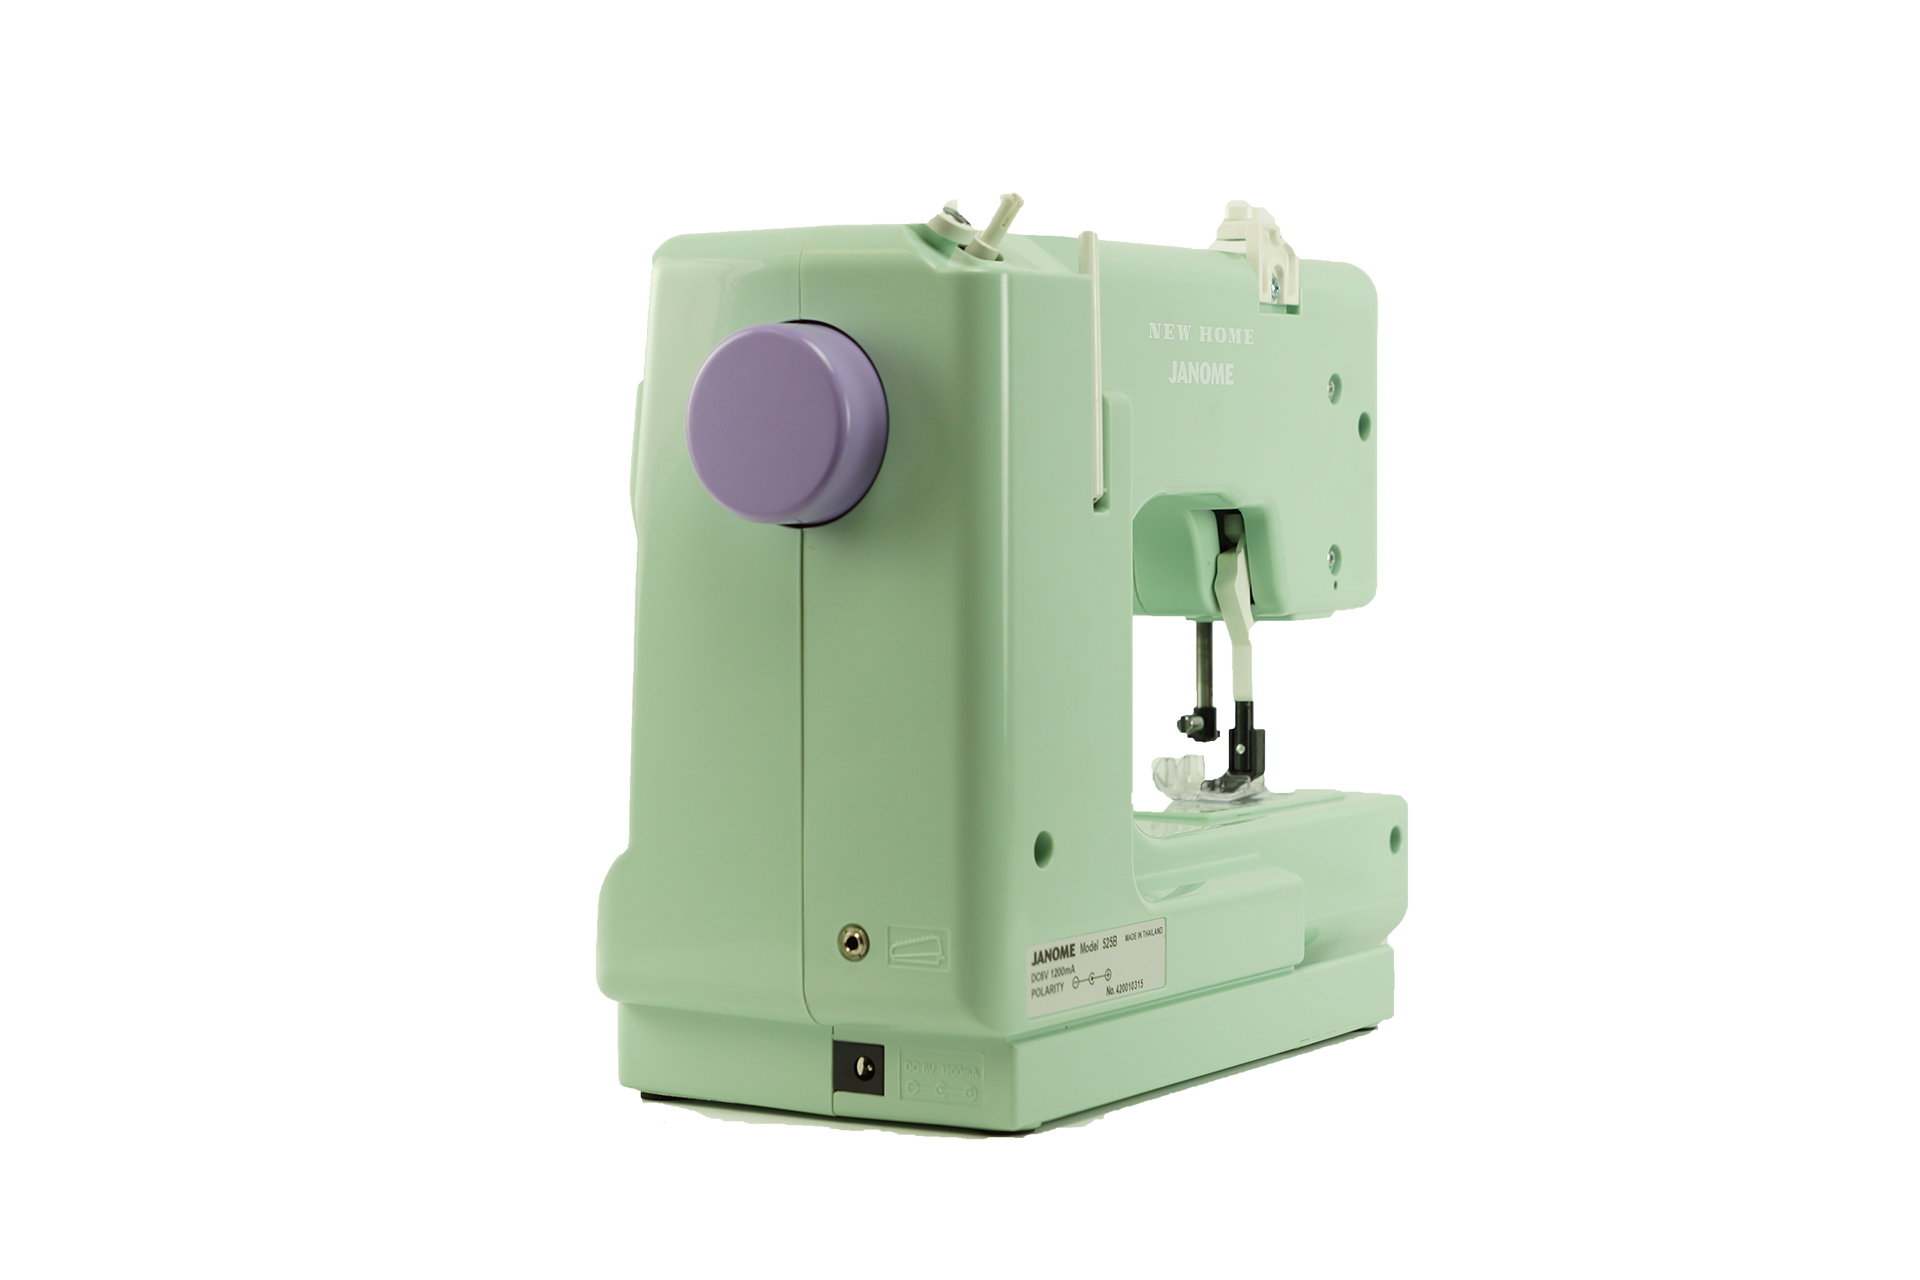 Janome Mystical Mint Portable Sewing Machine